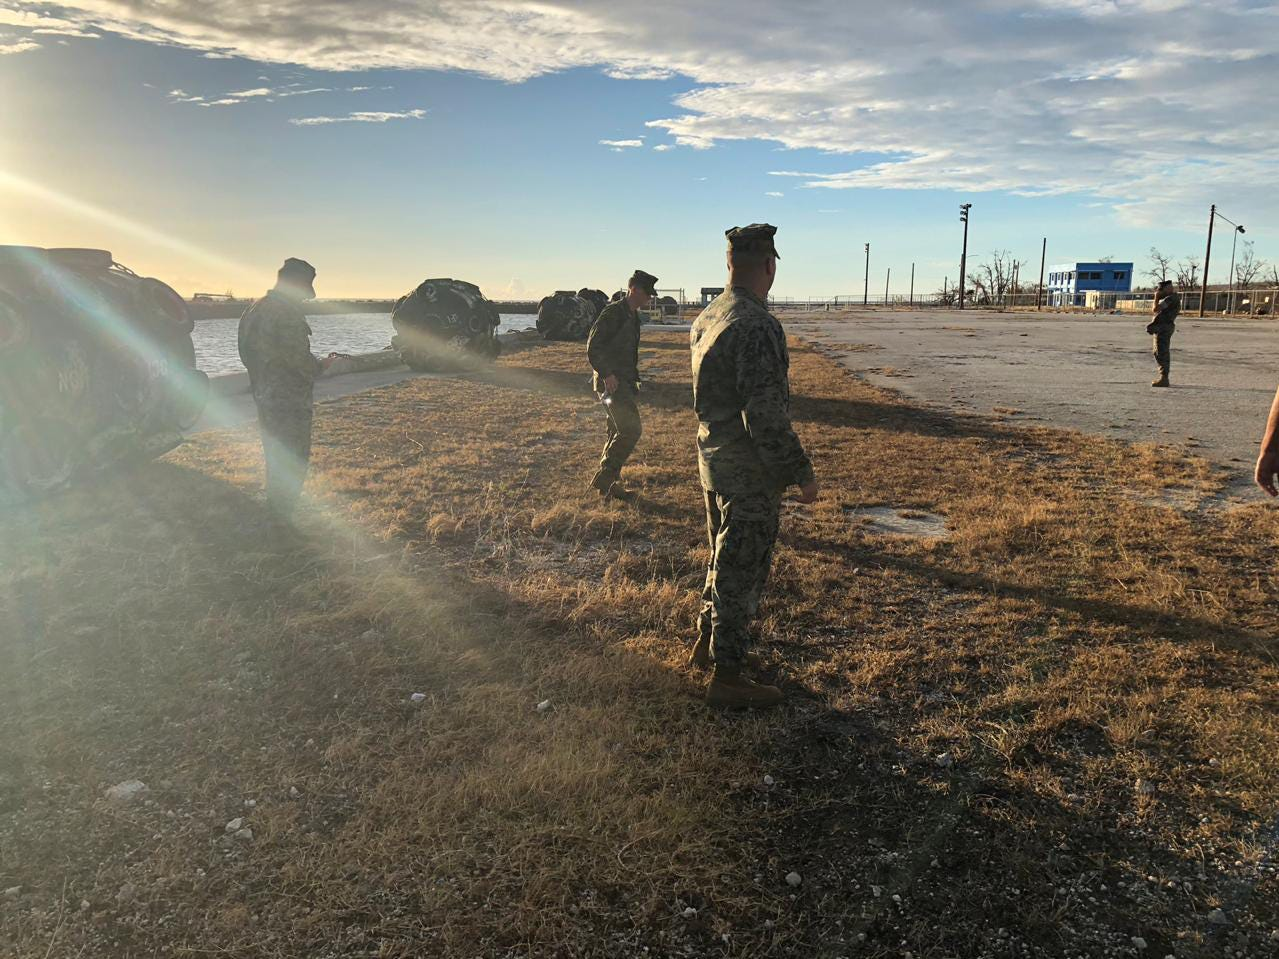 TINIAN, Commonwealth of the Northern Mariana Islands (Oct. 28, 2018) — U.S. Marines from Marine Corps Activity Guam assess damage to the port in Tinian to support future port operations for recovery efforts following Super Typhoon Yutu Oct. 28. Marines are in Tinian to oversee airport for all inbound Department of Defense support to local and civil officials as part of the Federal Emergency Management Agency-supported typhoon recovery efforts.